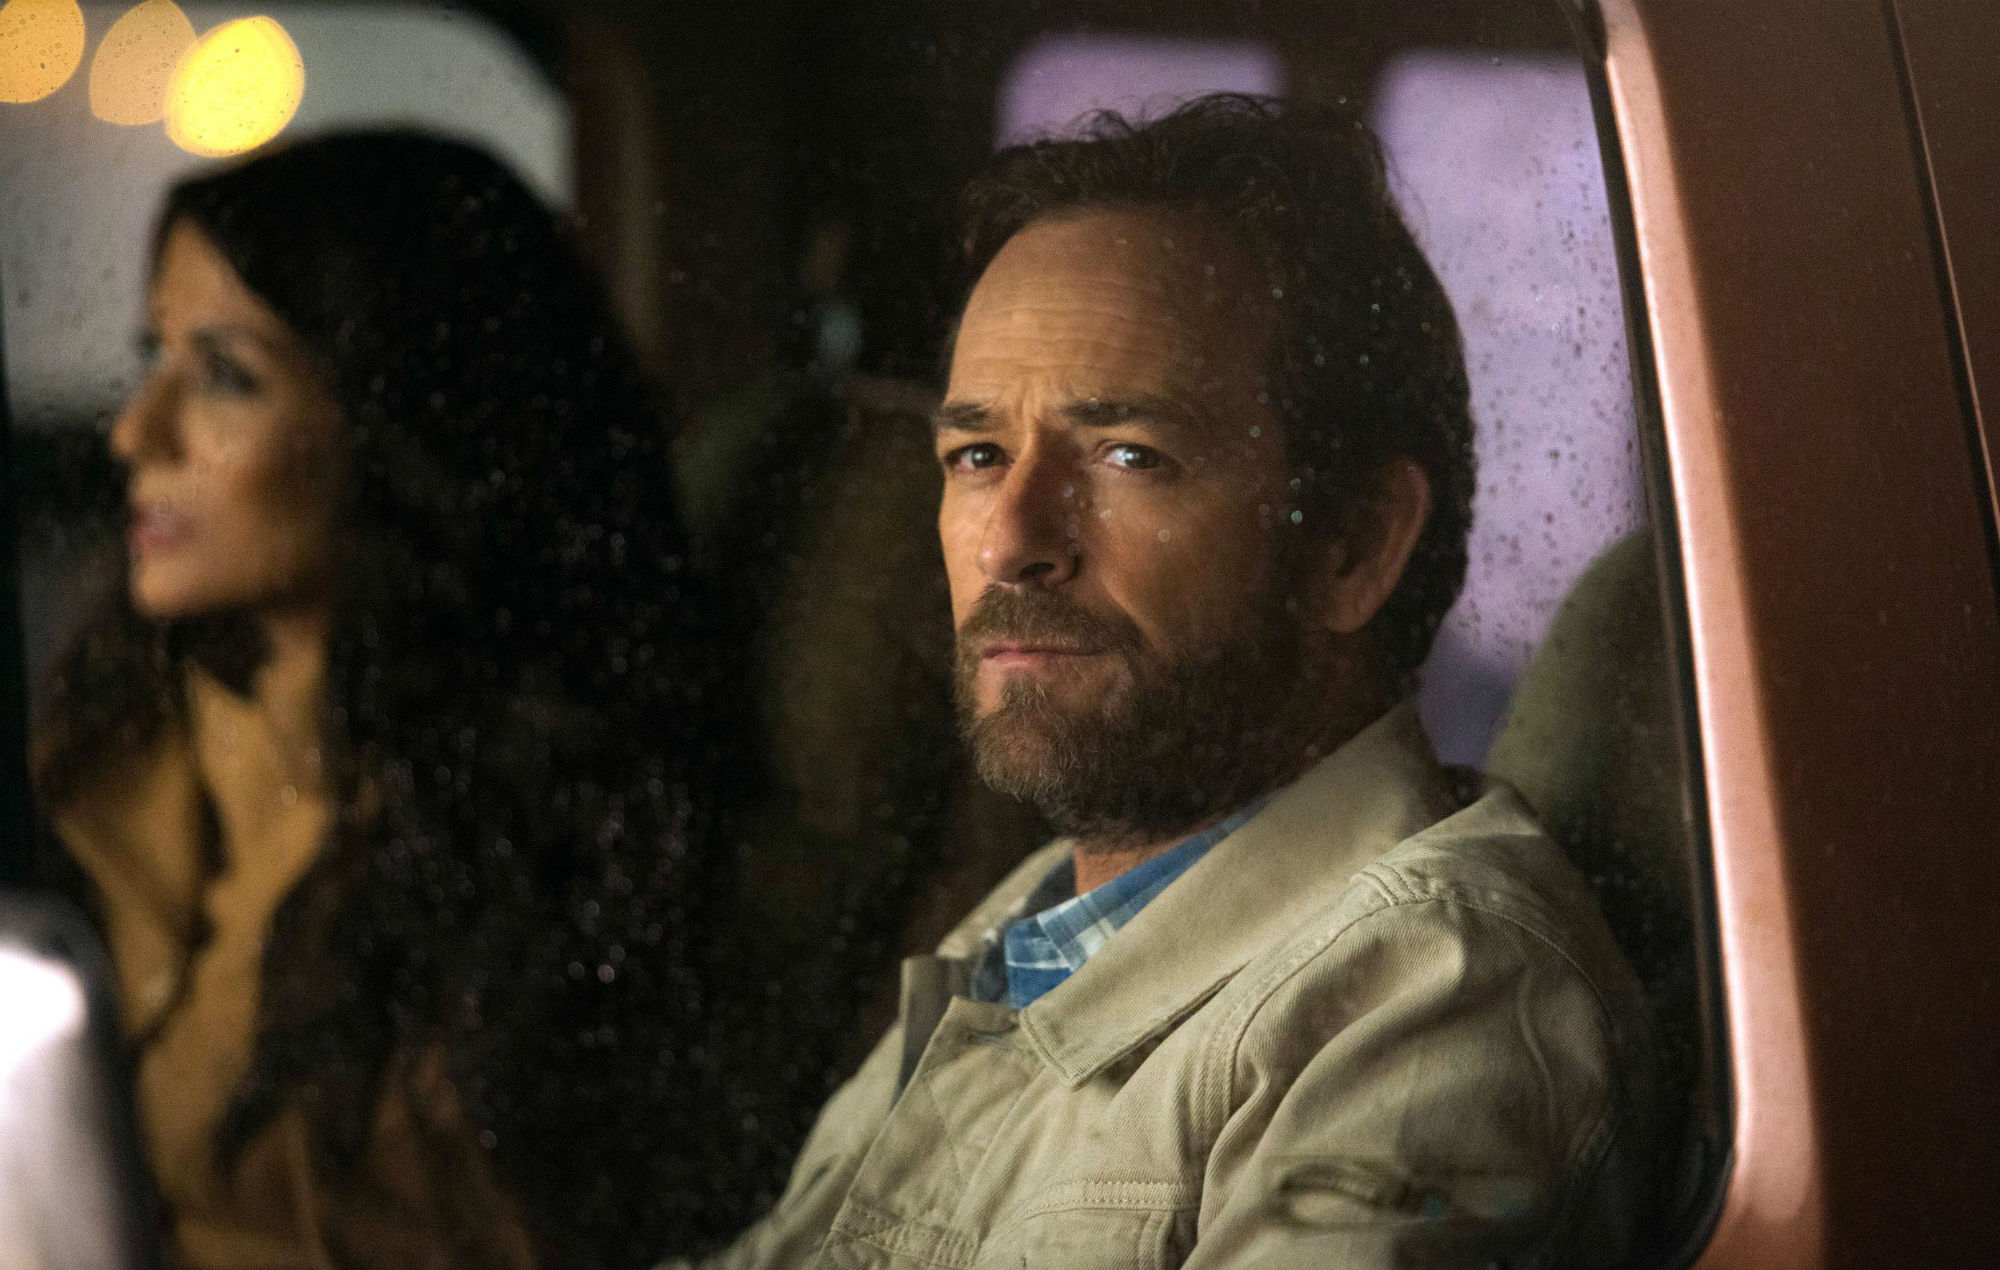 Deleted scene from 'Once Upon A Time In Hollywood' features bigger role for Luke Perry